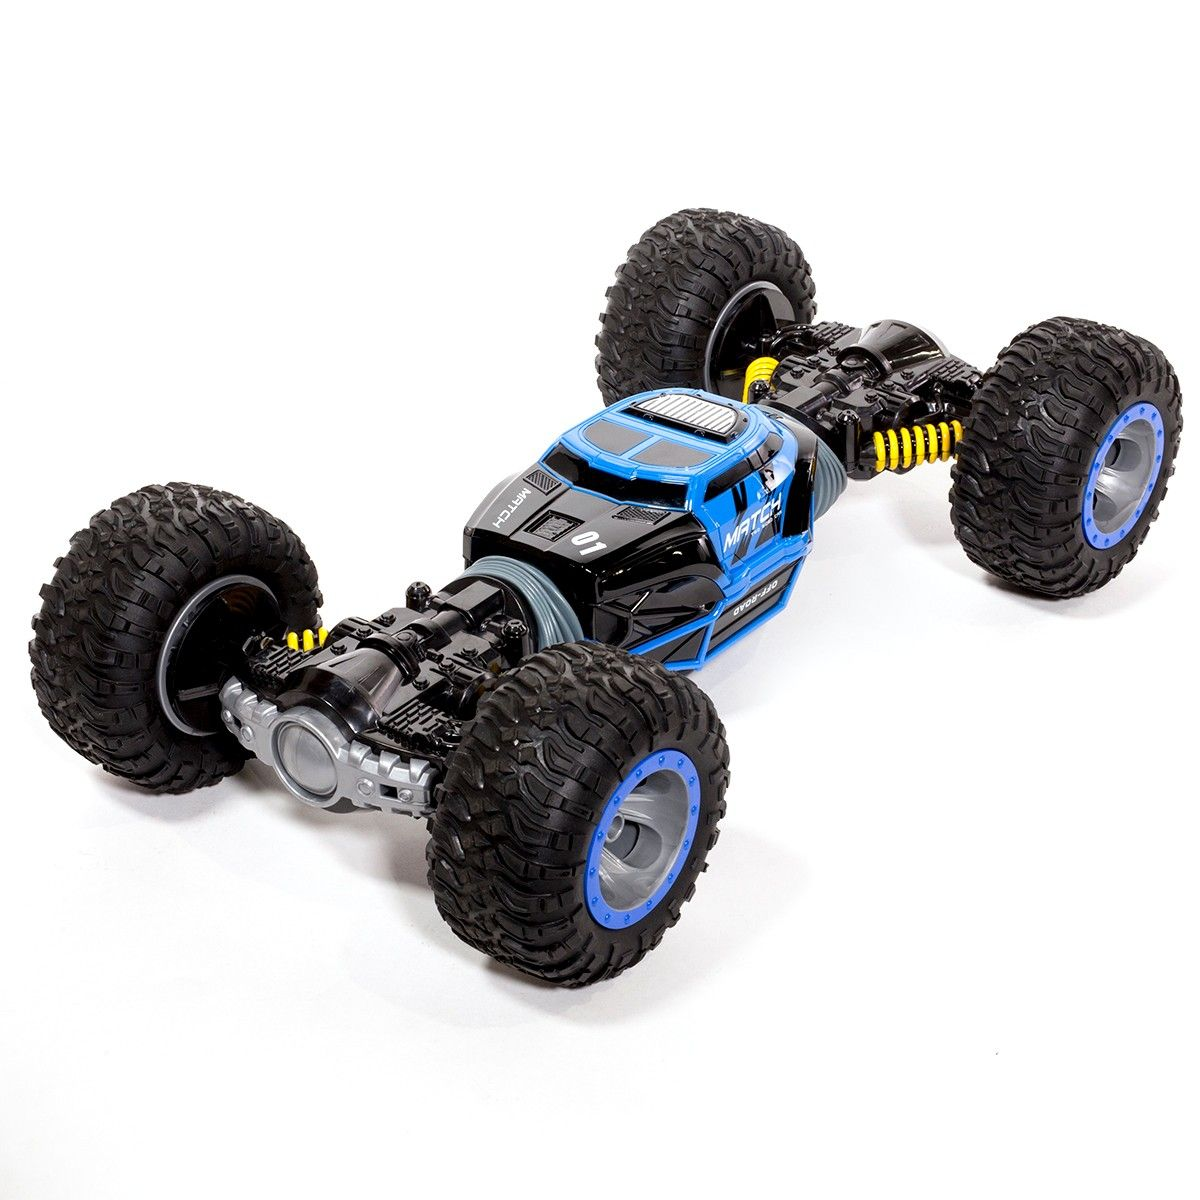 Ihubdeal Leopard King Double Sided Flip RC Stunt Car with